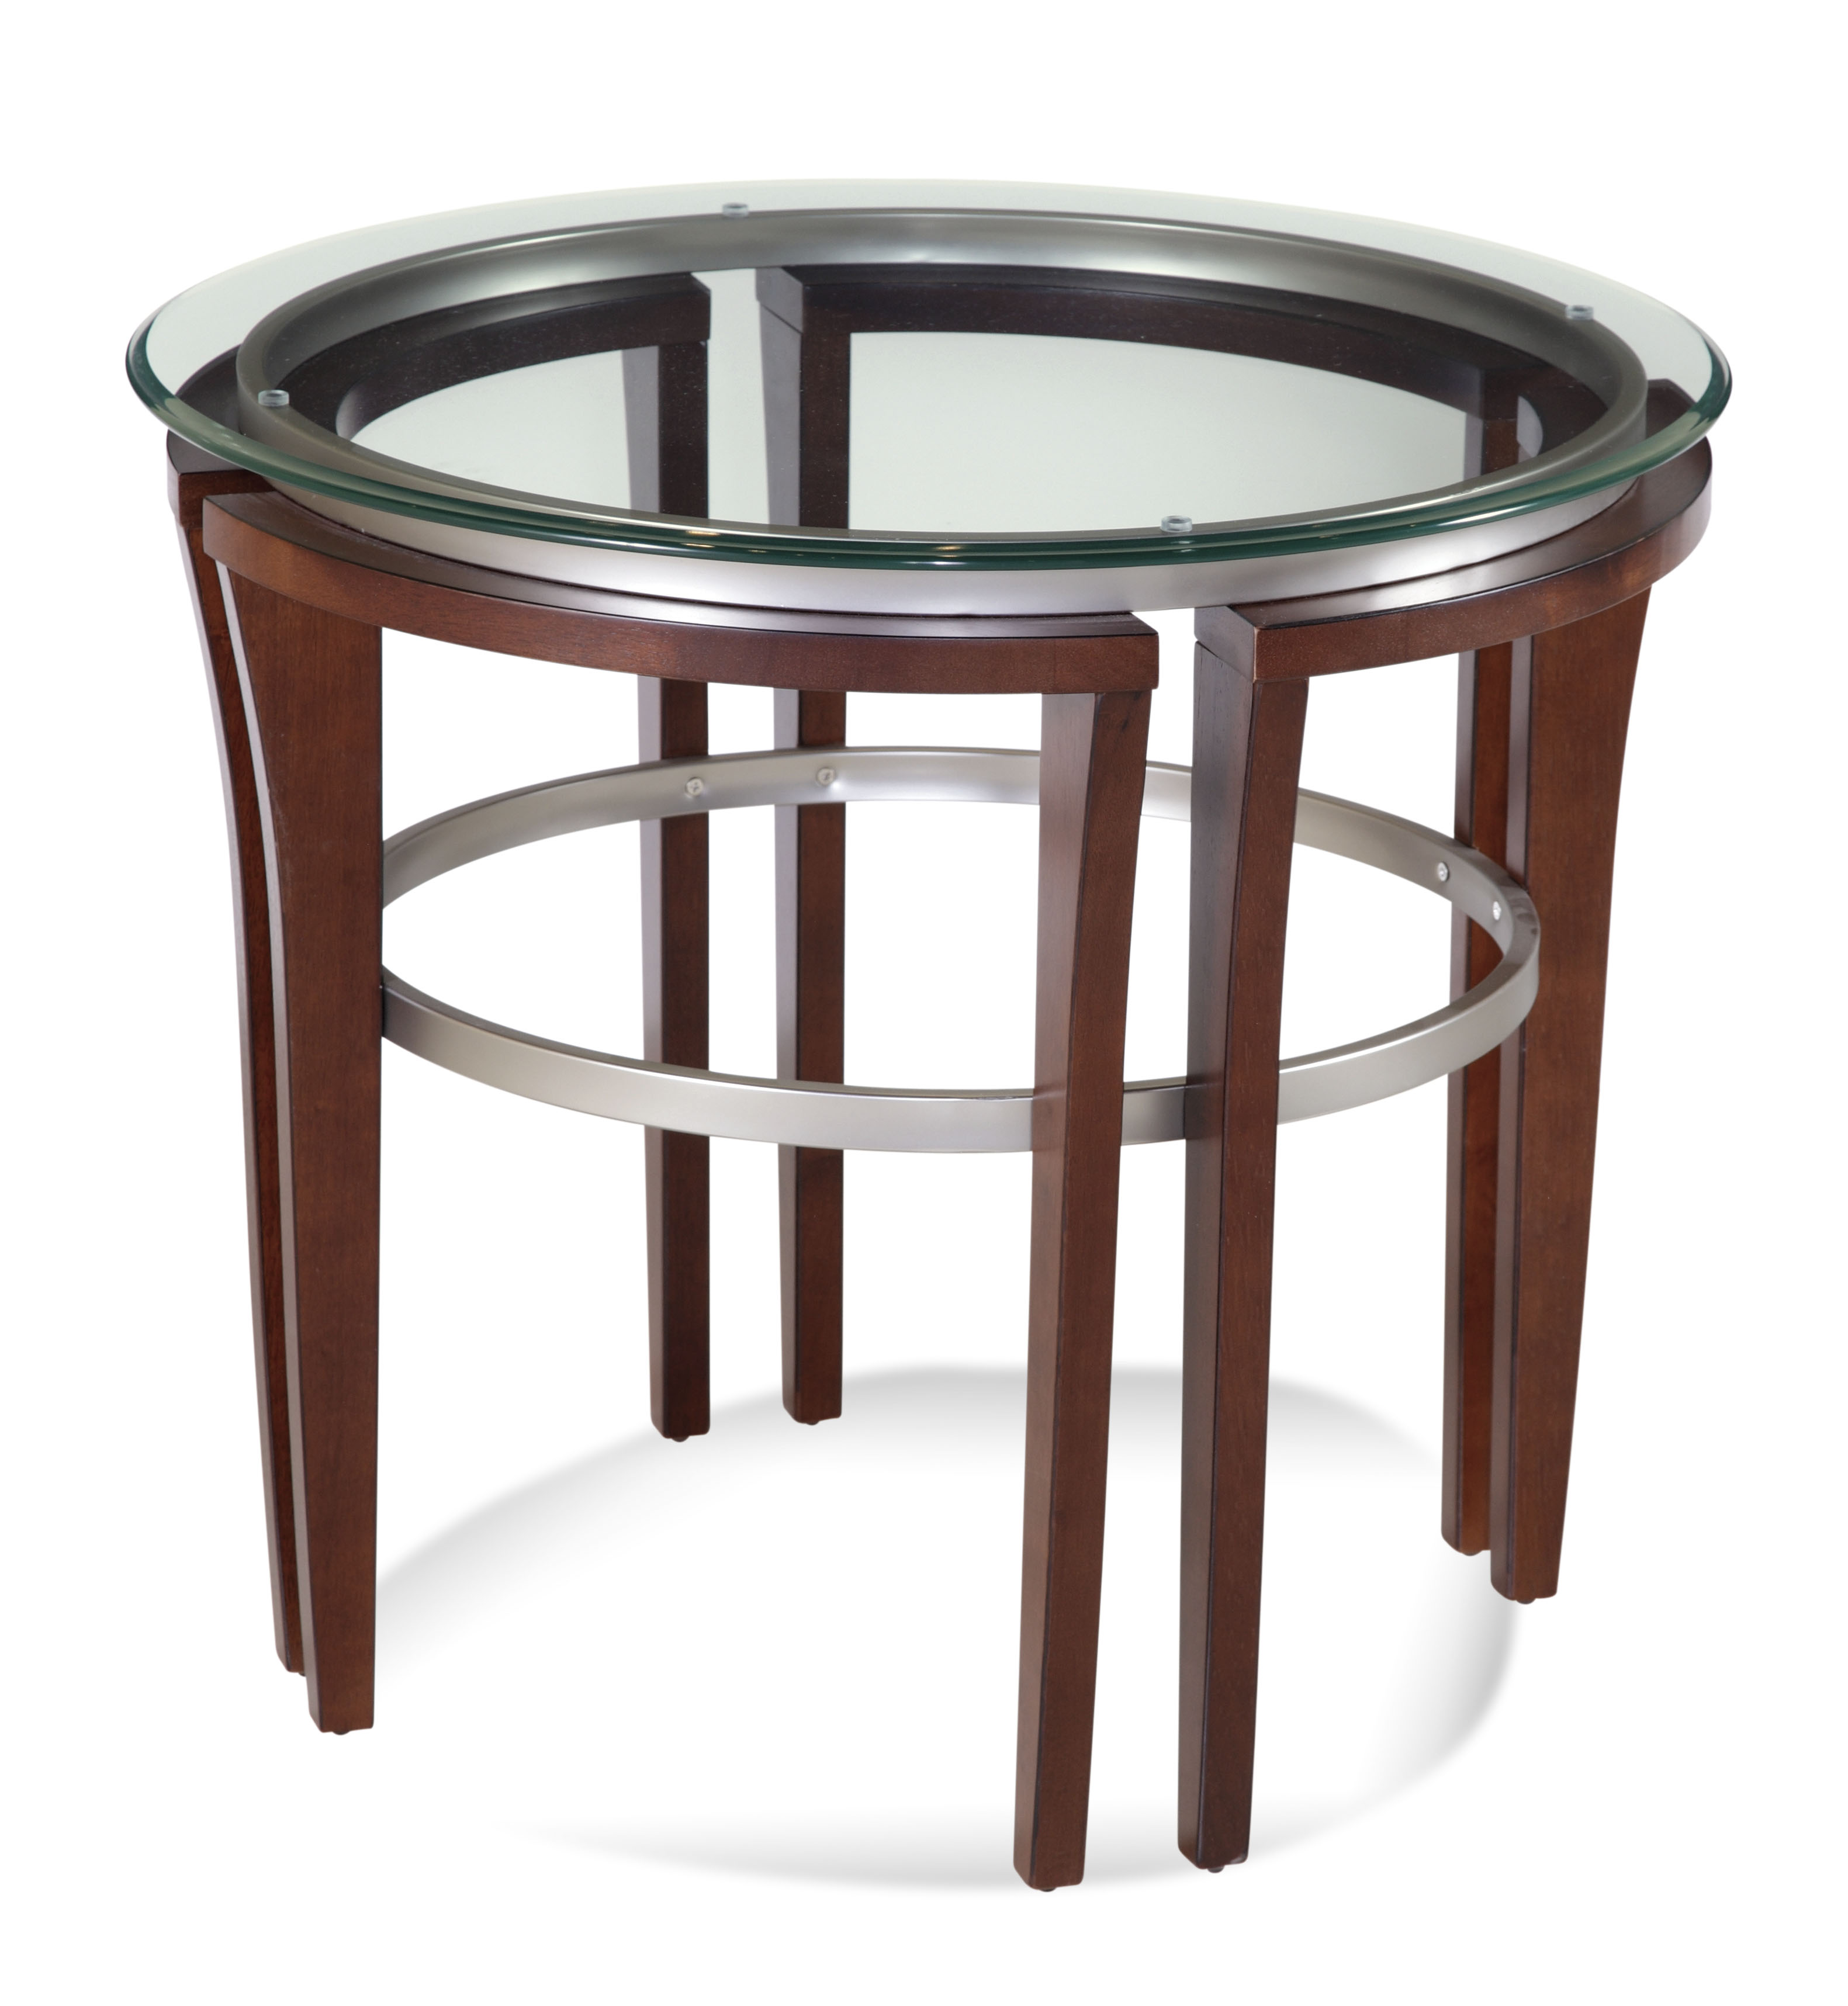 Thoroughly Modern Fusion Round End Table by Bassett Mirror at Story & Lee Furniture